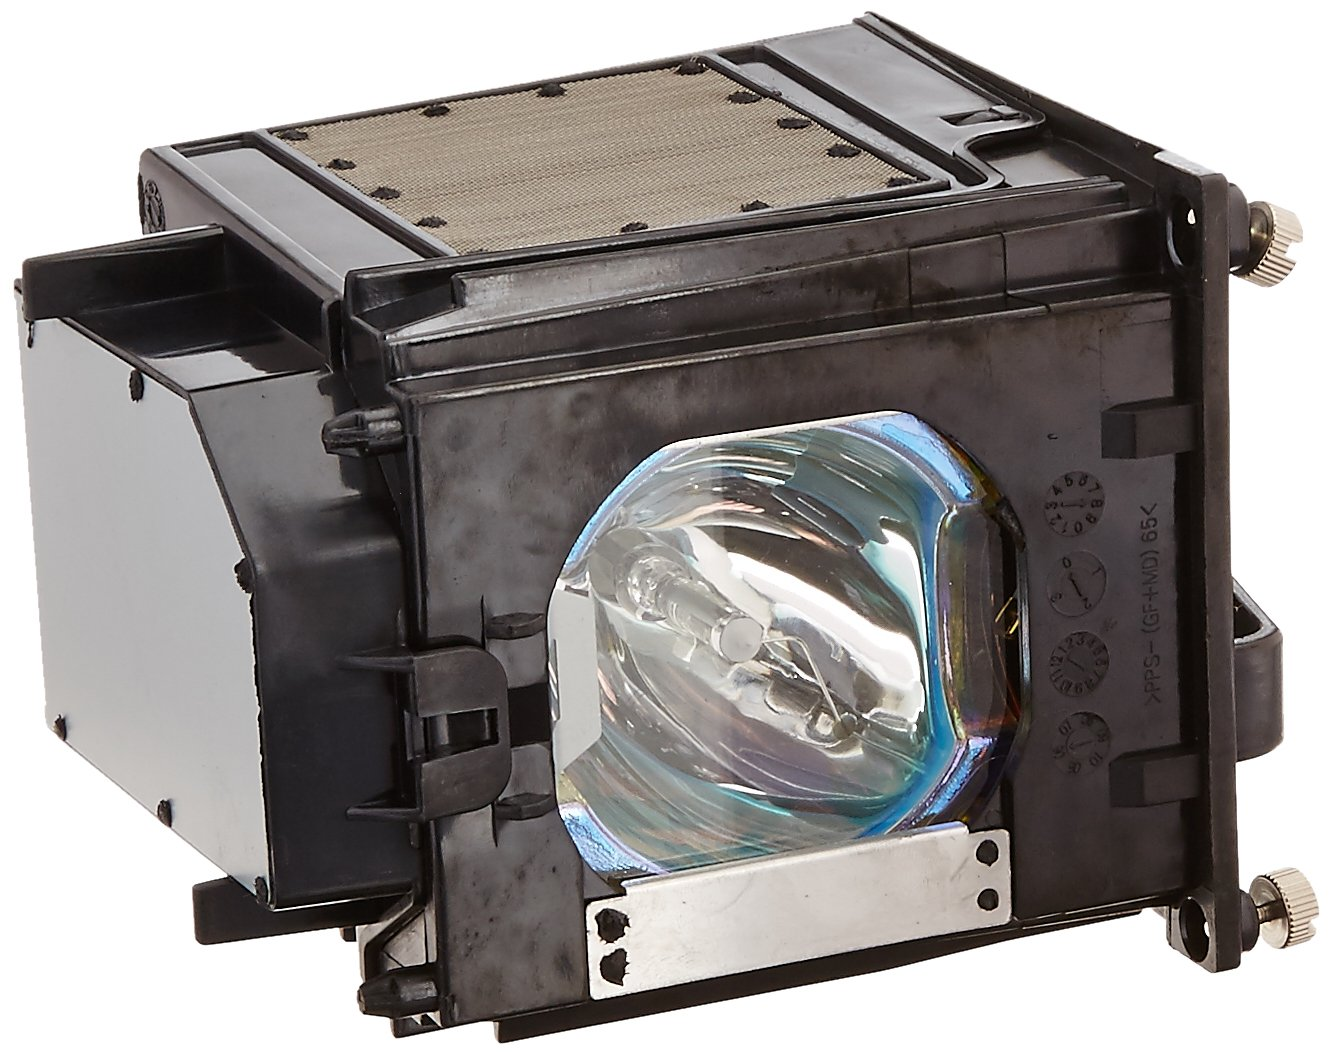 Replacement for Benq Sx914 Bare Lamp Only Projector Tv Lamp Bulb by Technical Precision